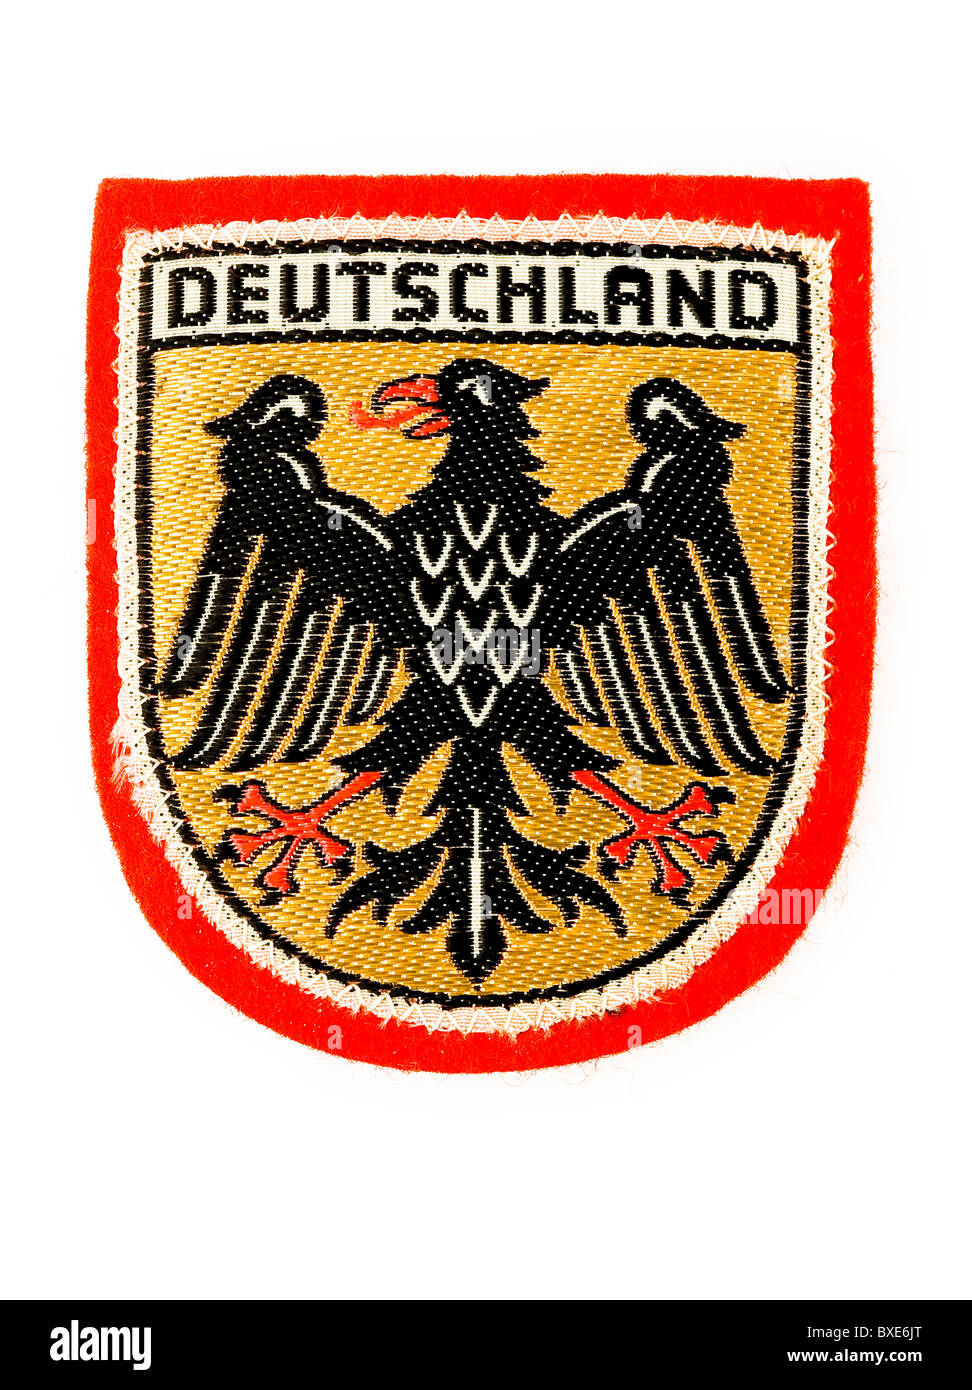 Embroidered cloth badge, or patch, depicting Germany with the . Eagle Shield shape. From about 1964. - Stock Image